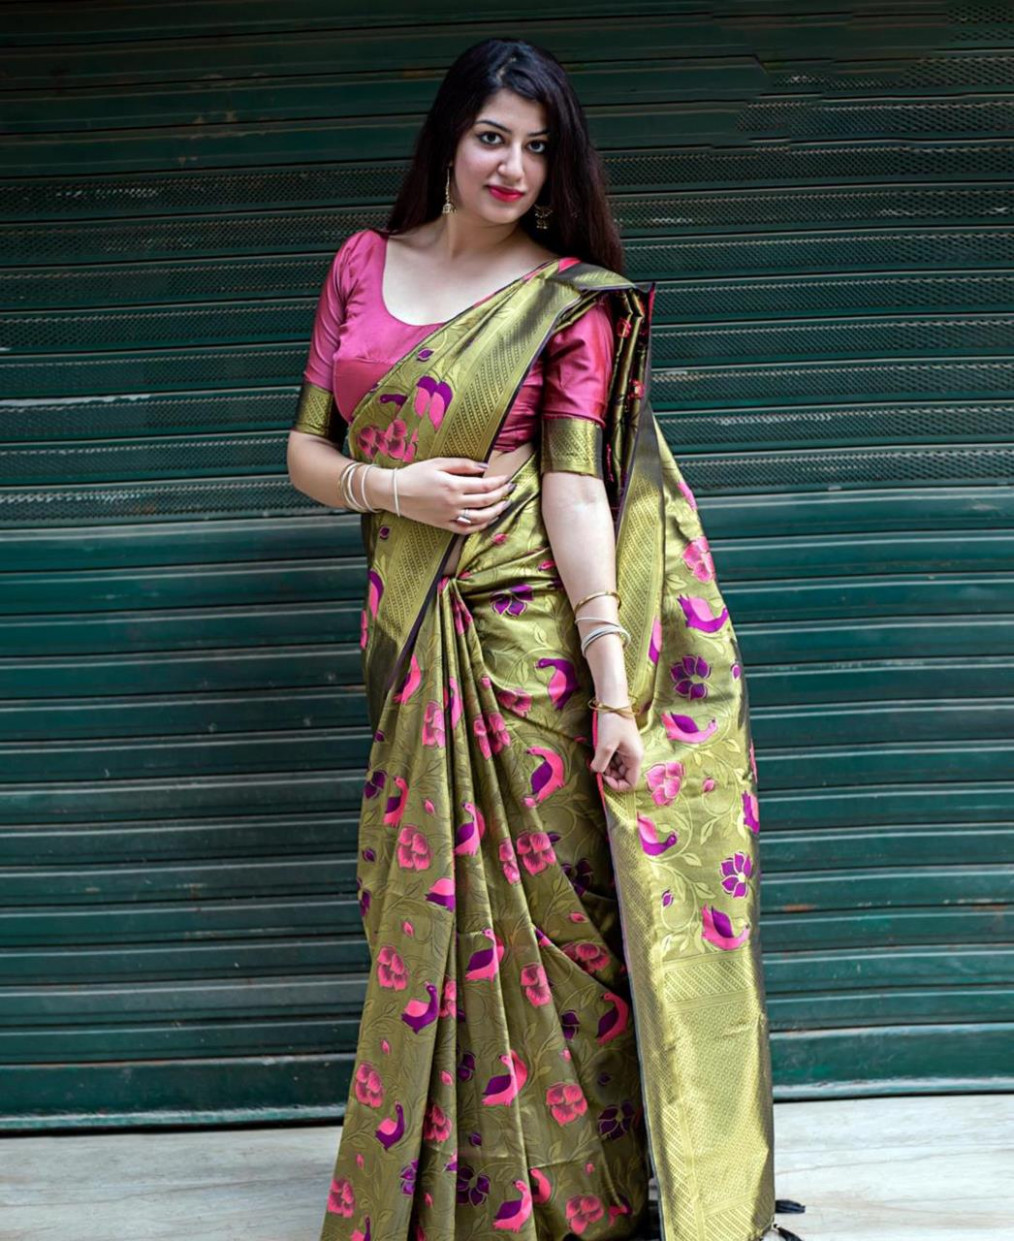 Buy Alluring Green Silk Saree [165702] at 310.45 د.إ.‏